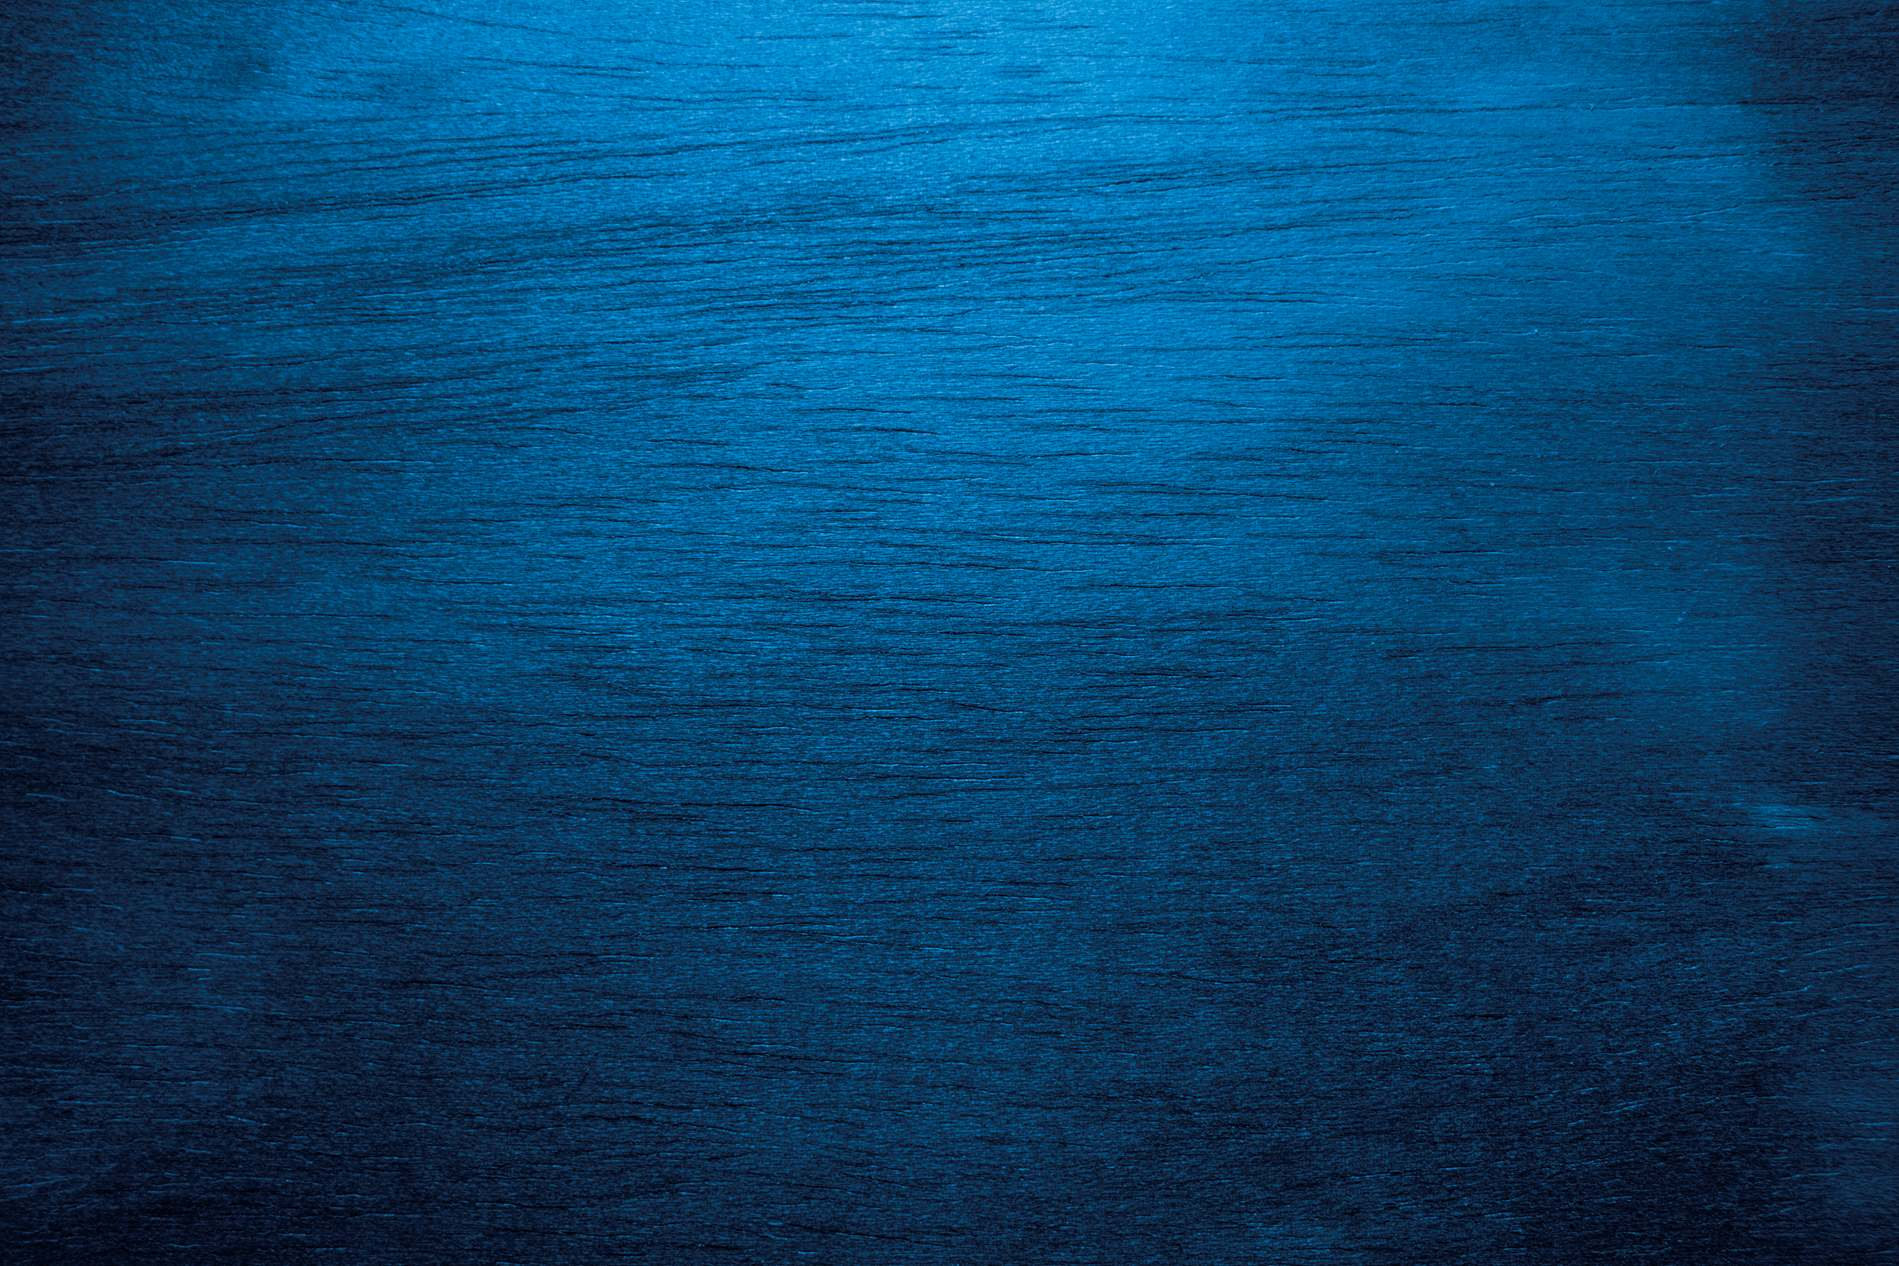 Dark Blue Vintage Background Texture - PhotoHDX